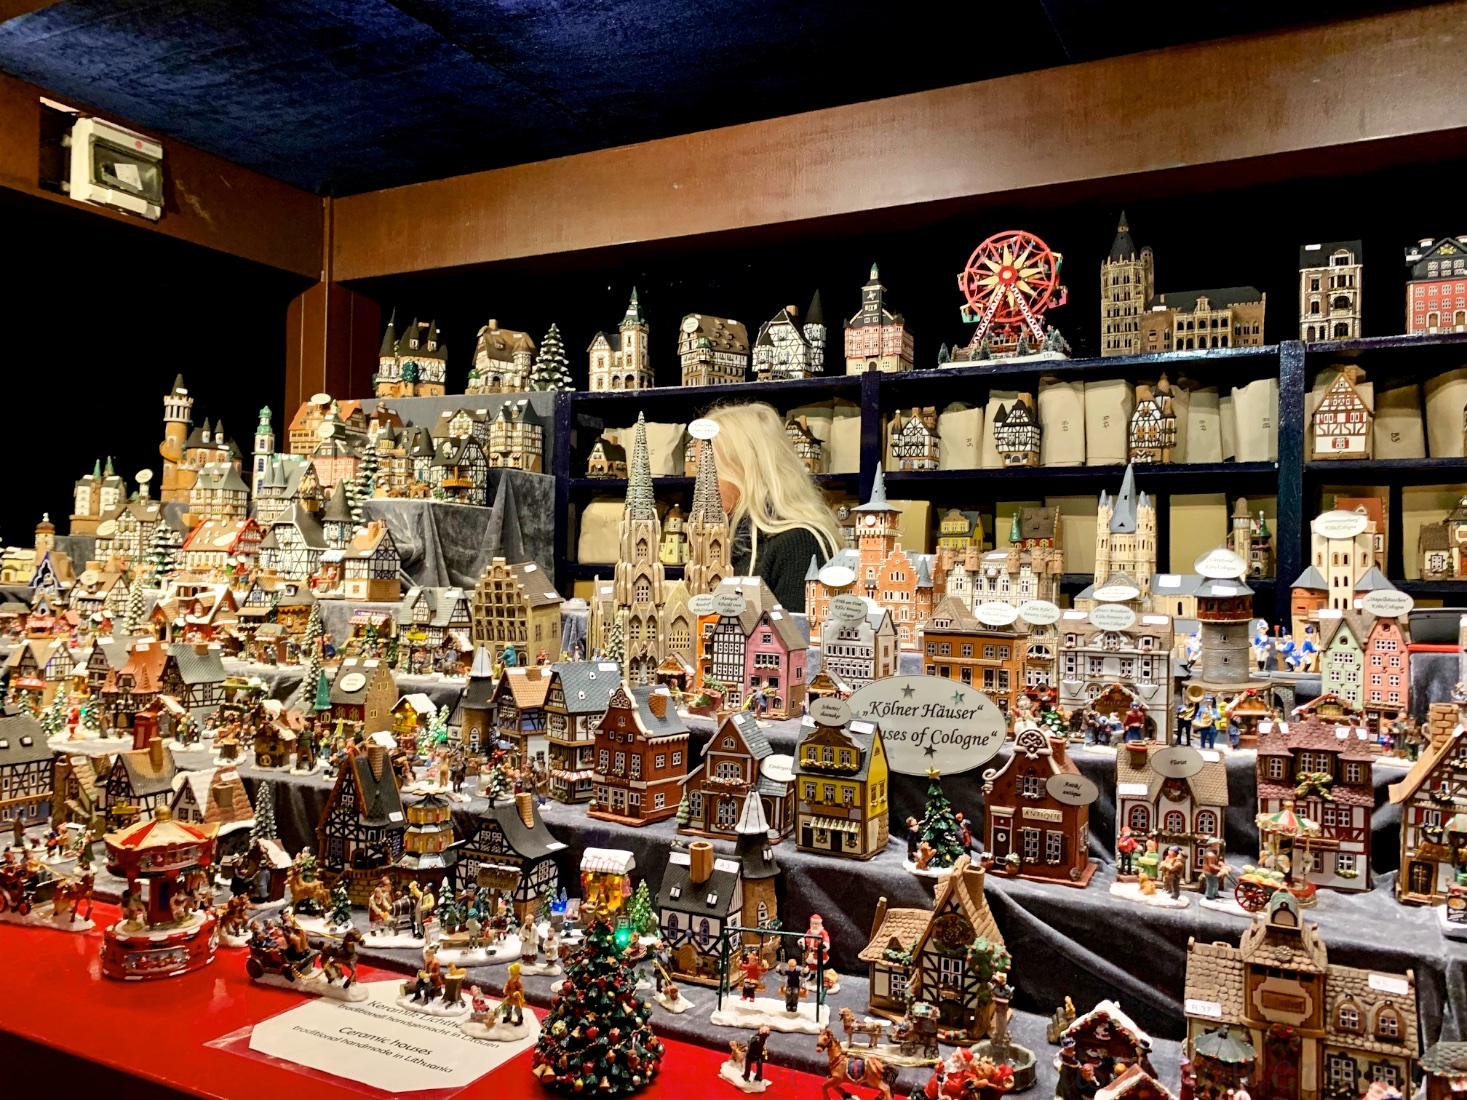 Traditional Christmas villages for sale at the Cologne Christmas market